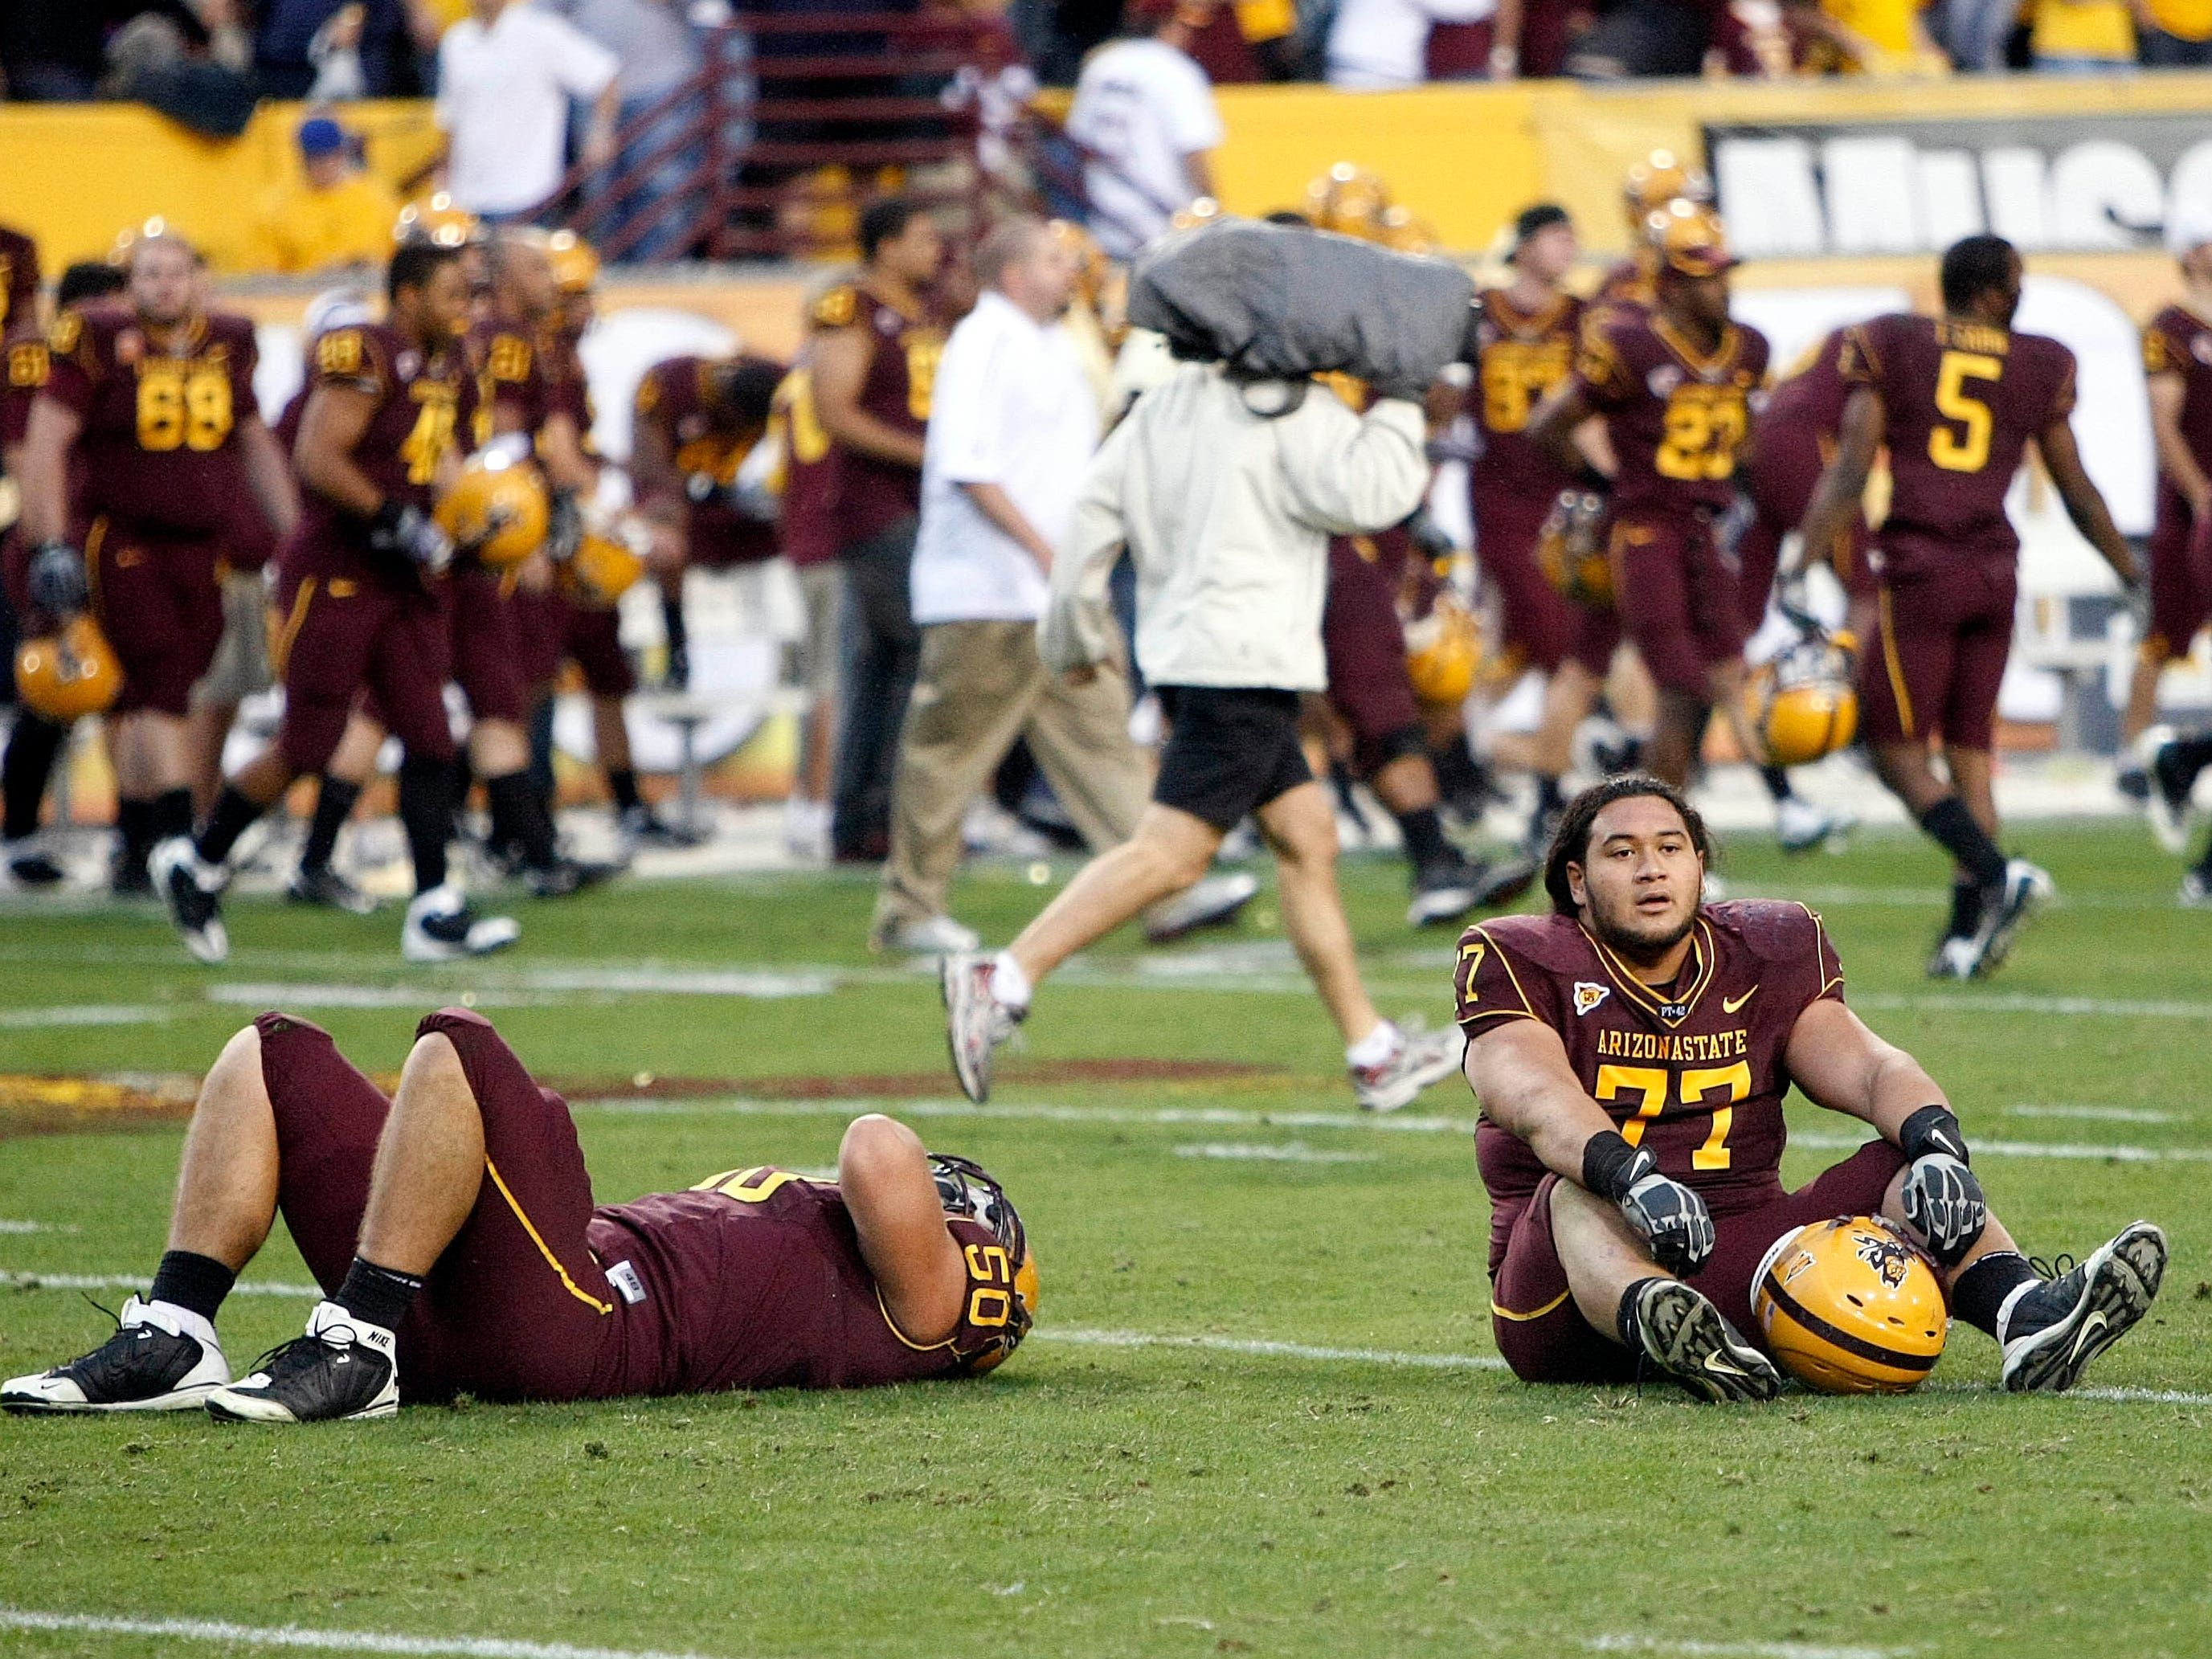 Arizona State's Lawrence Guy, left, and Saia Falahola sit on the field after losing an NCAA college football game against Arizona, Saturday, Nov. 28, 2009, in Tempe, Ariz. Arizona won 20-17. (AP Photo/Matt York)